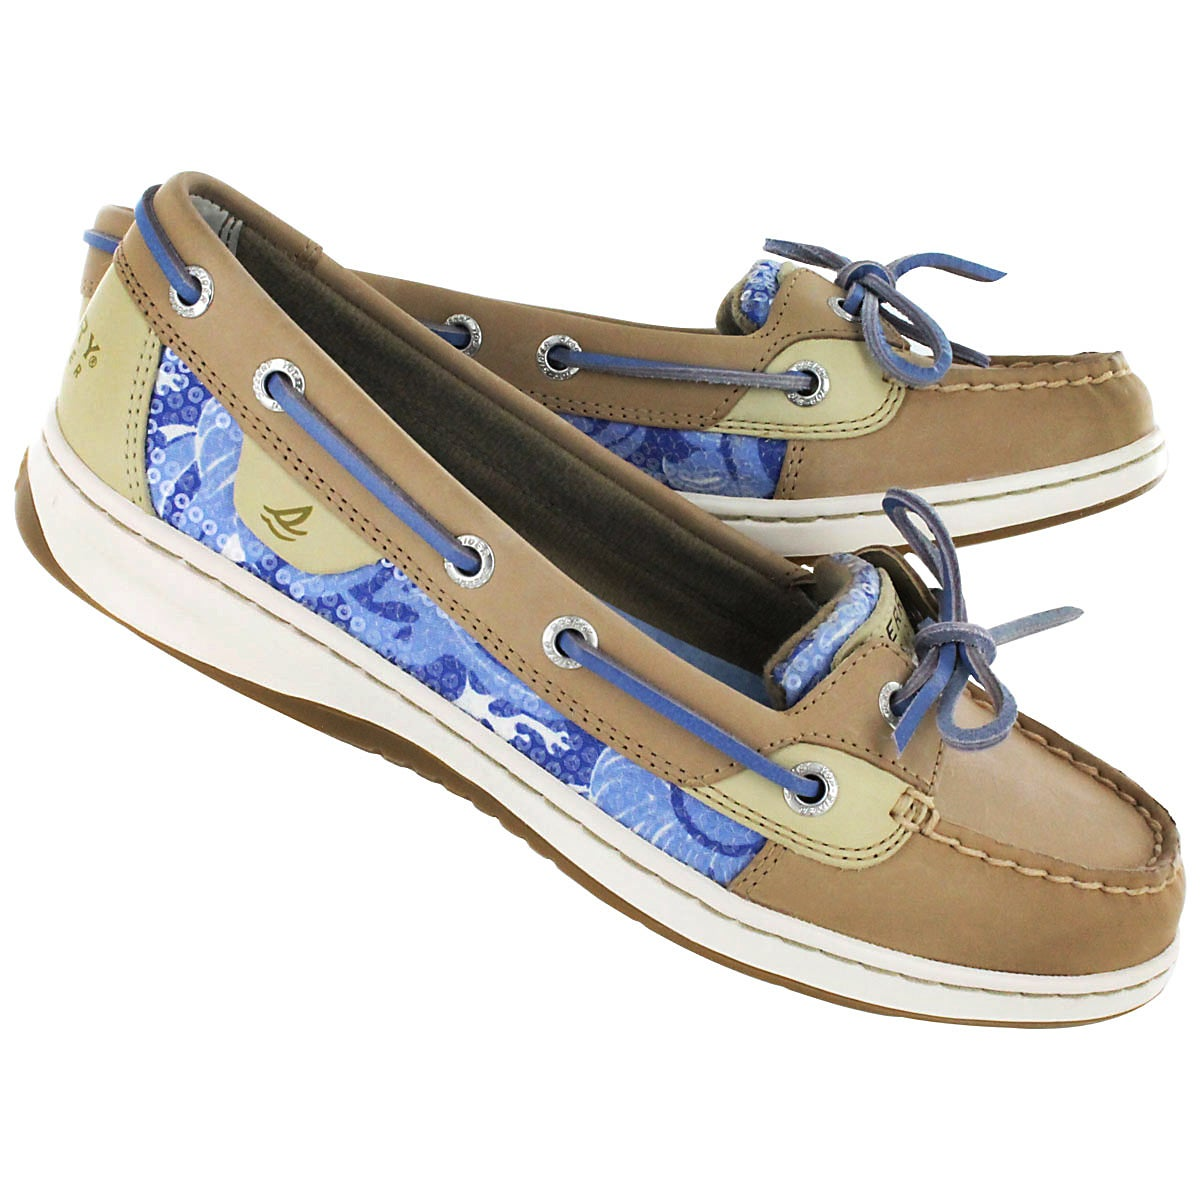 Sperry Shoes For Men Sale Images Sonoma